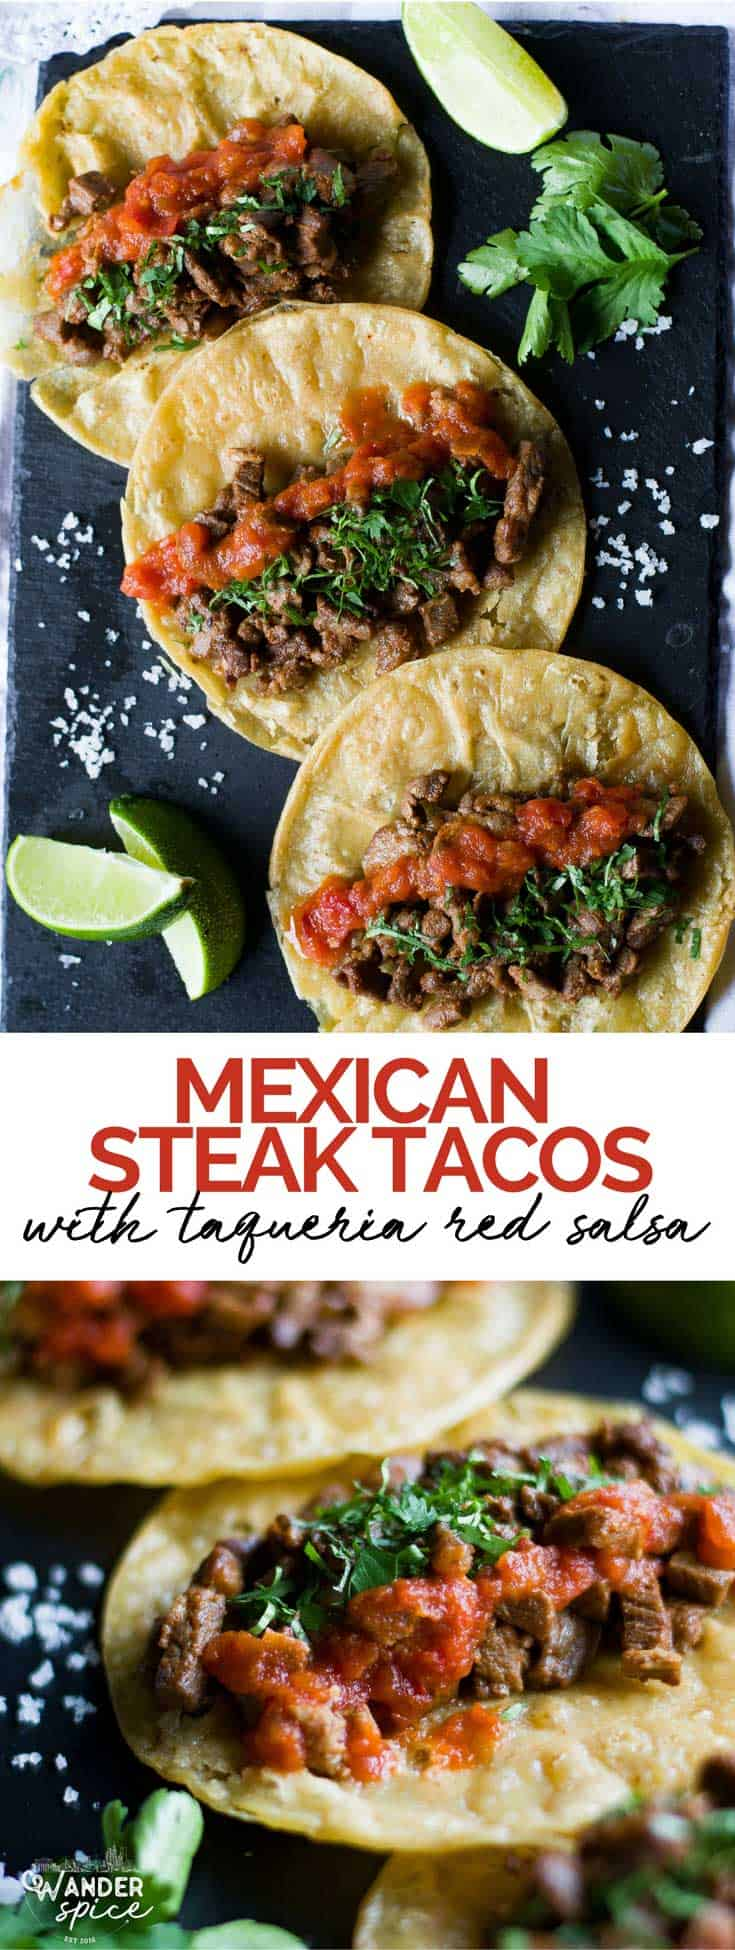 Mexican Steak Tacos - carne asada tacos with taqueria-style red salsa. Tacos | Mexican | Steak | Corn Tortillas | Red Salsa | Cilantro